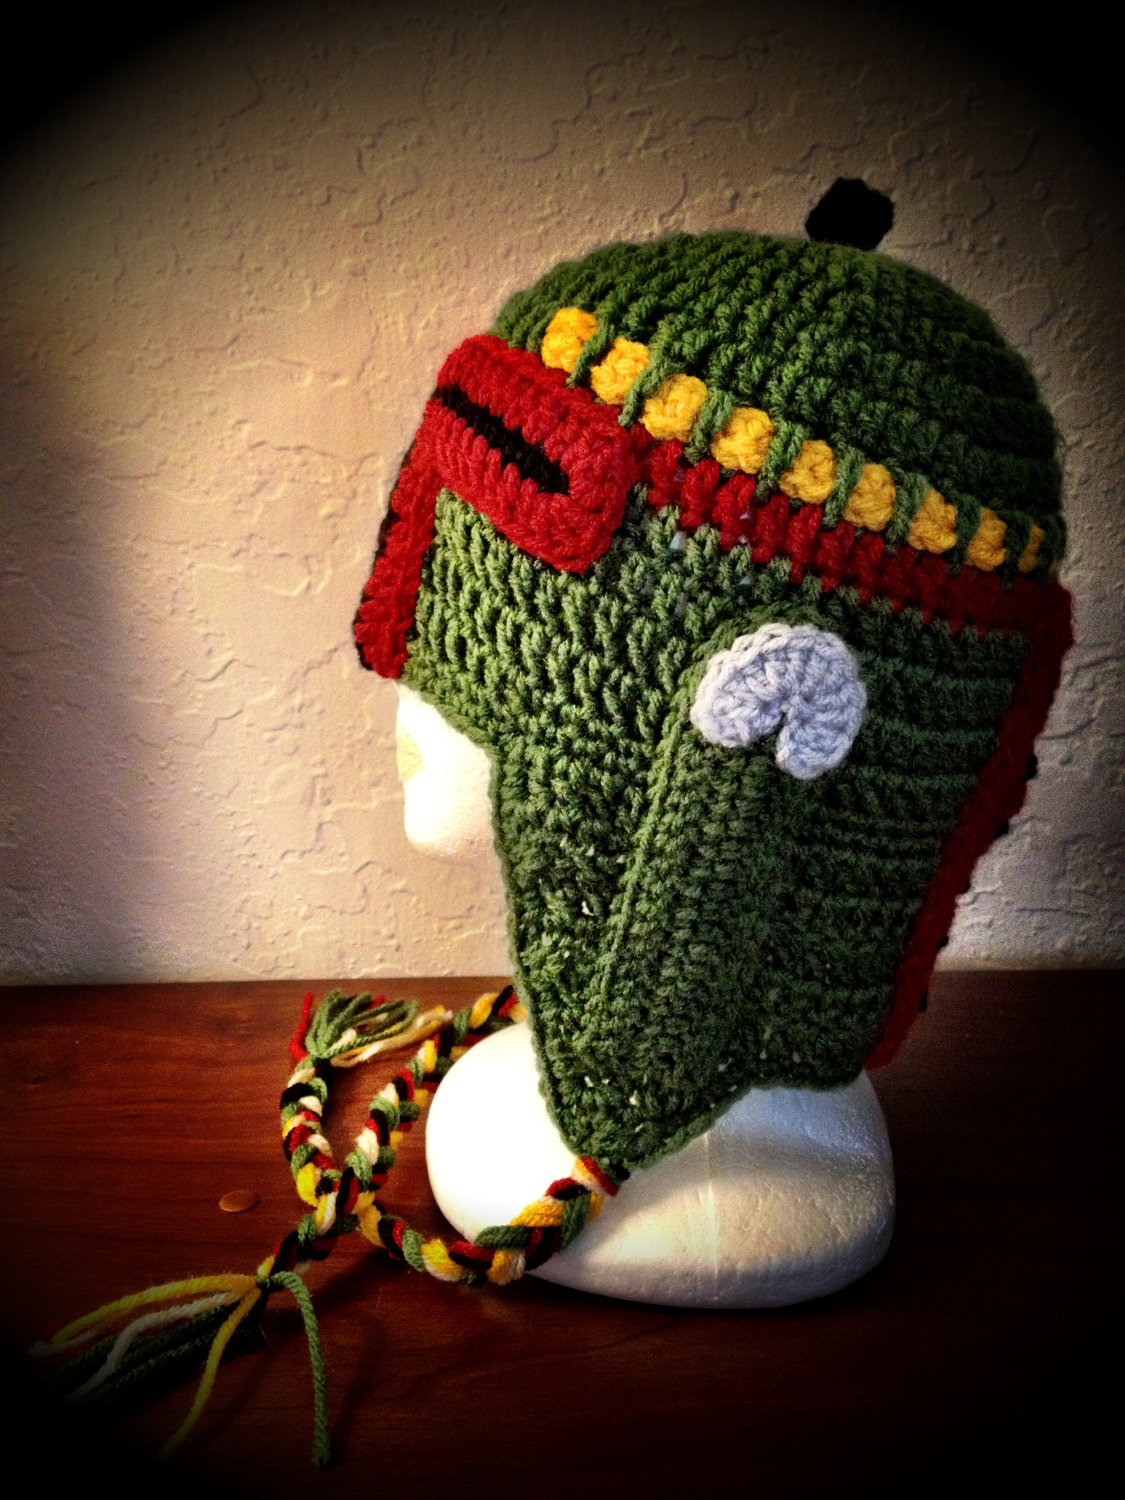 Free crochet patterns for star wars character hats manet for geeky crafts on pinterest geek crafts cthulhu and lego free crochet patterns bankloansurffo Choice Image